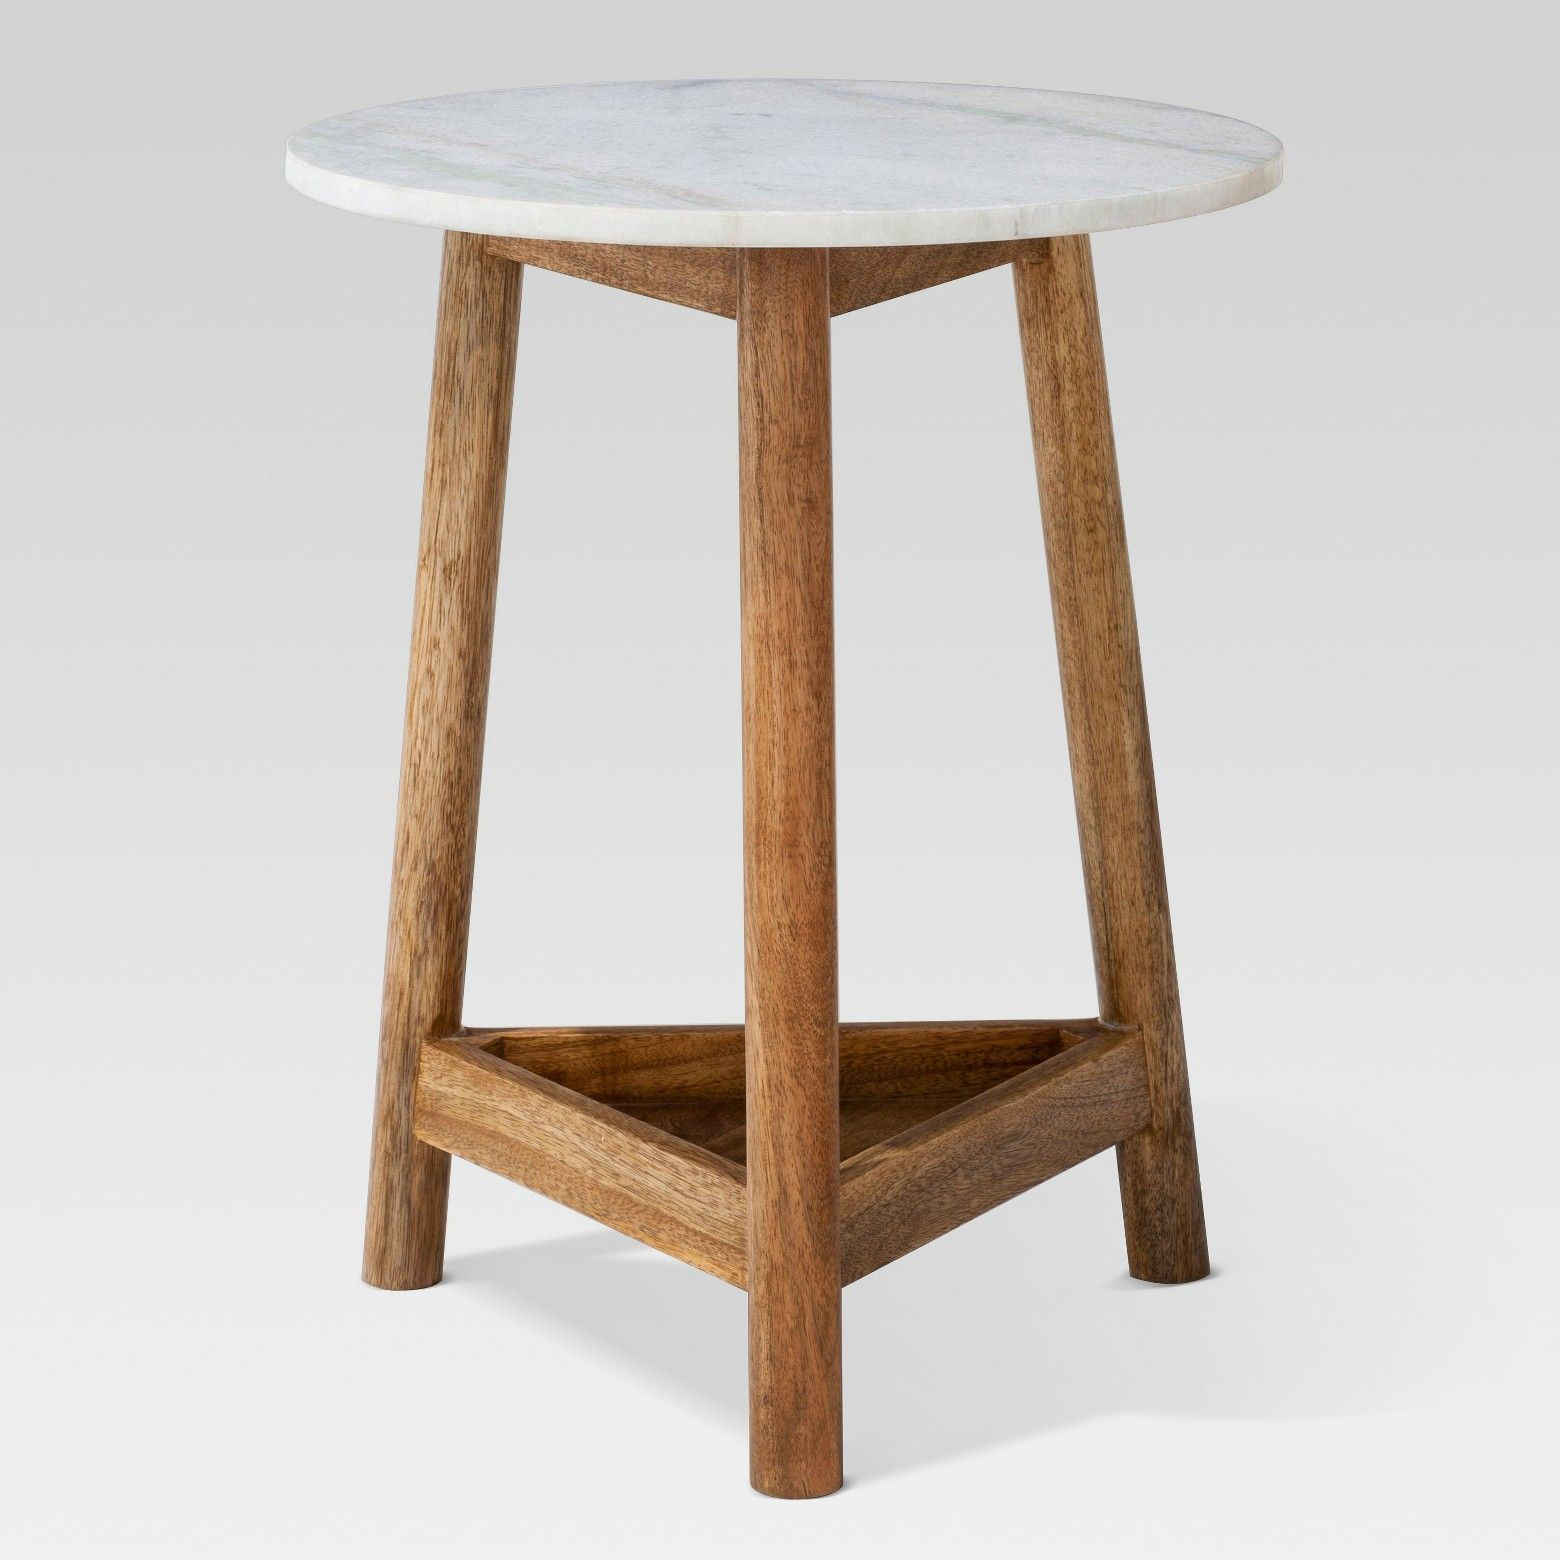 lanham marble top side table threshold living room target accent the from has beautiful blend mango wood and instantly becoming focal point any you place pottery barn rattan